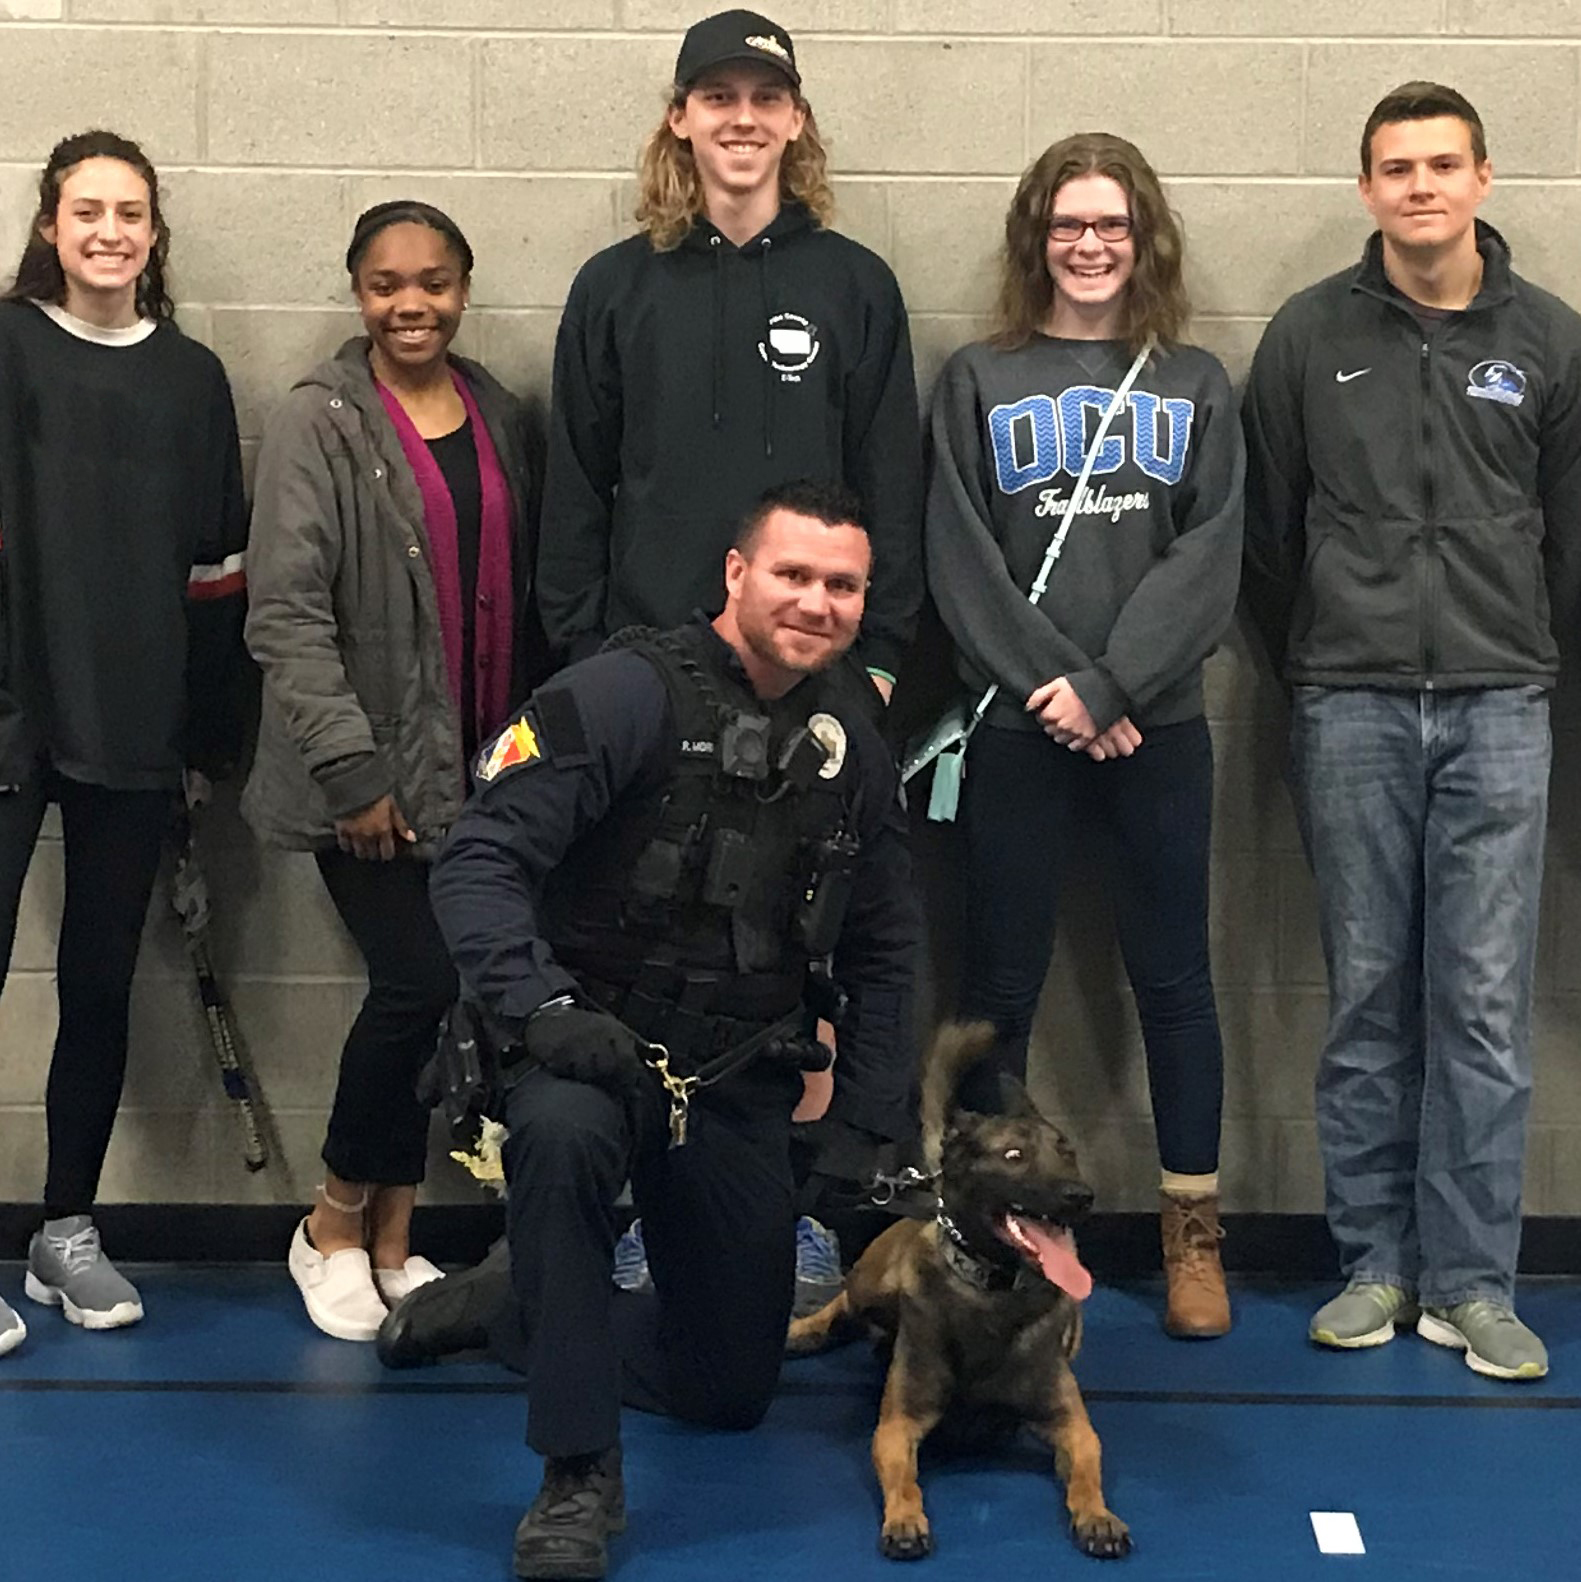 Criminal Justice Students Watch K-9 Search Demo